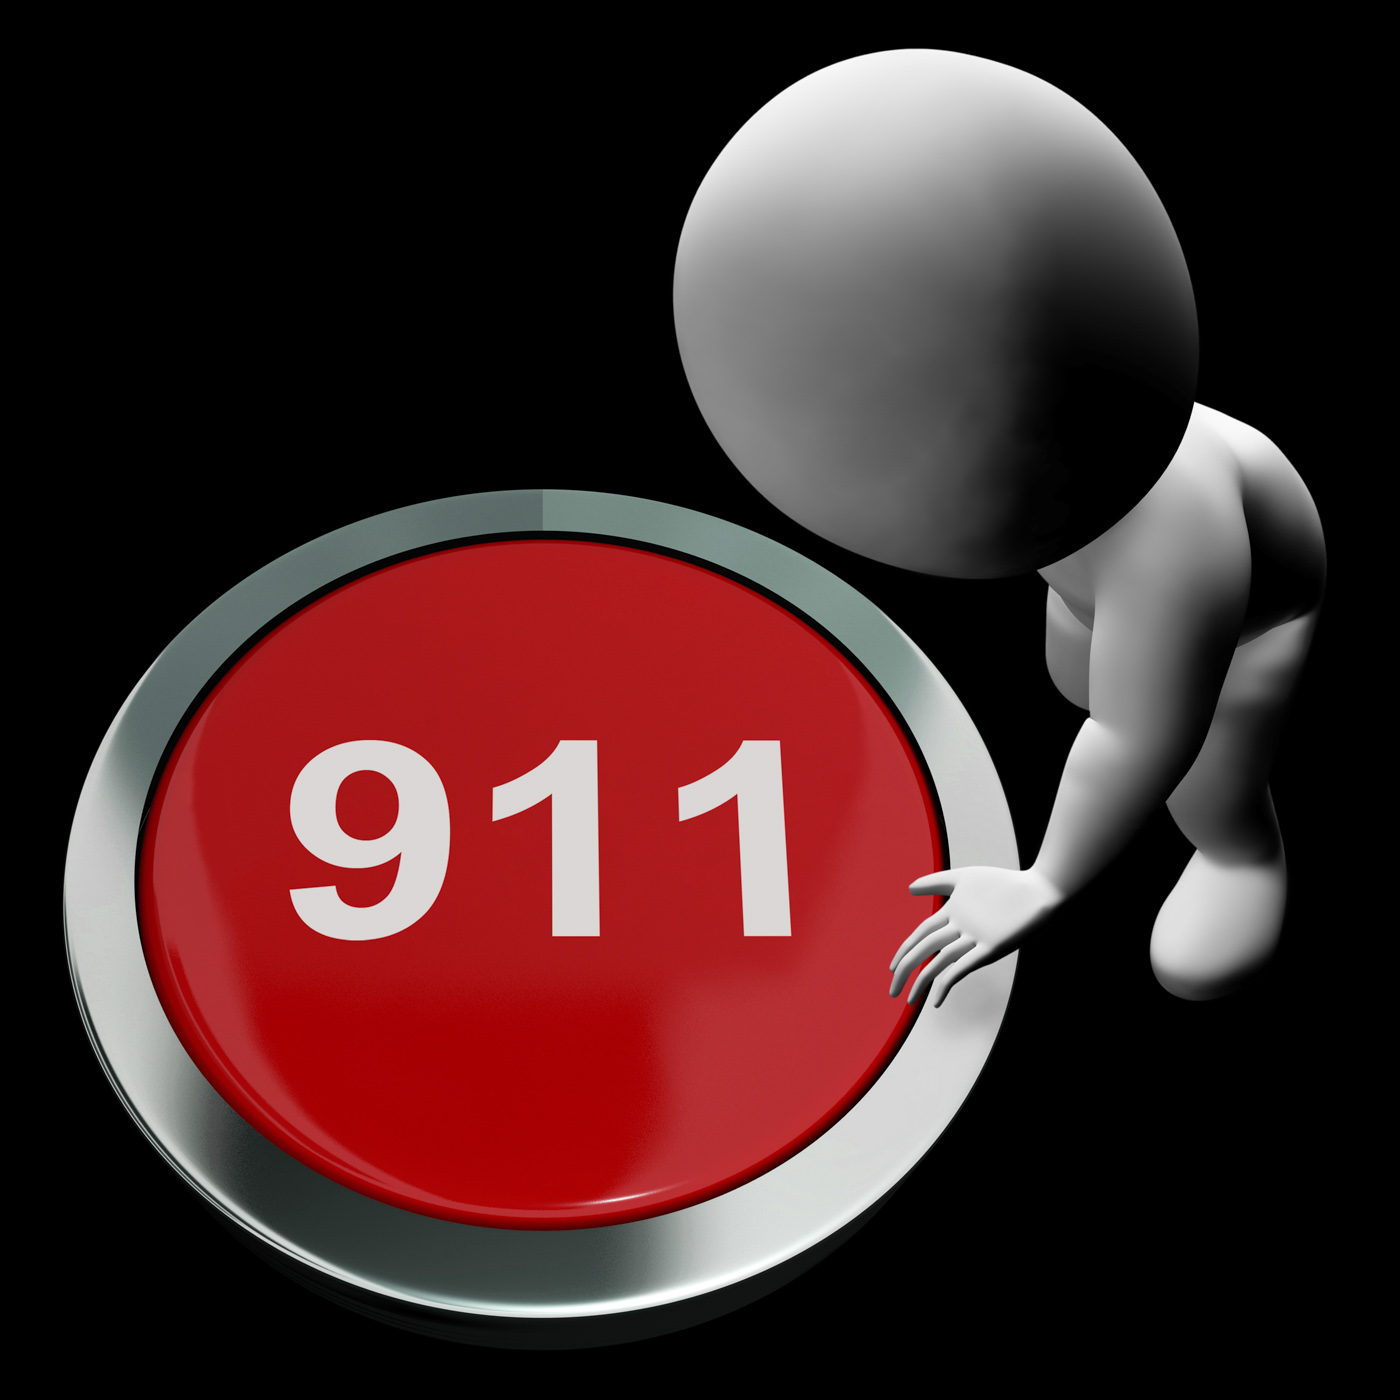 Nine one one button shows 911 emergency or crisis photo